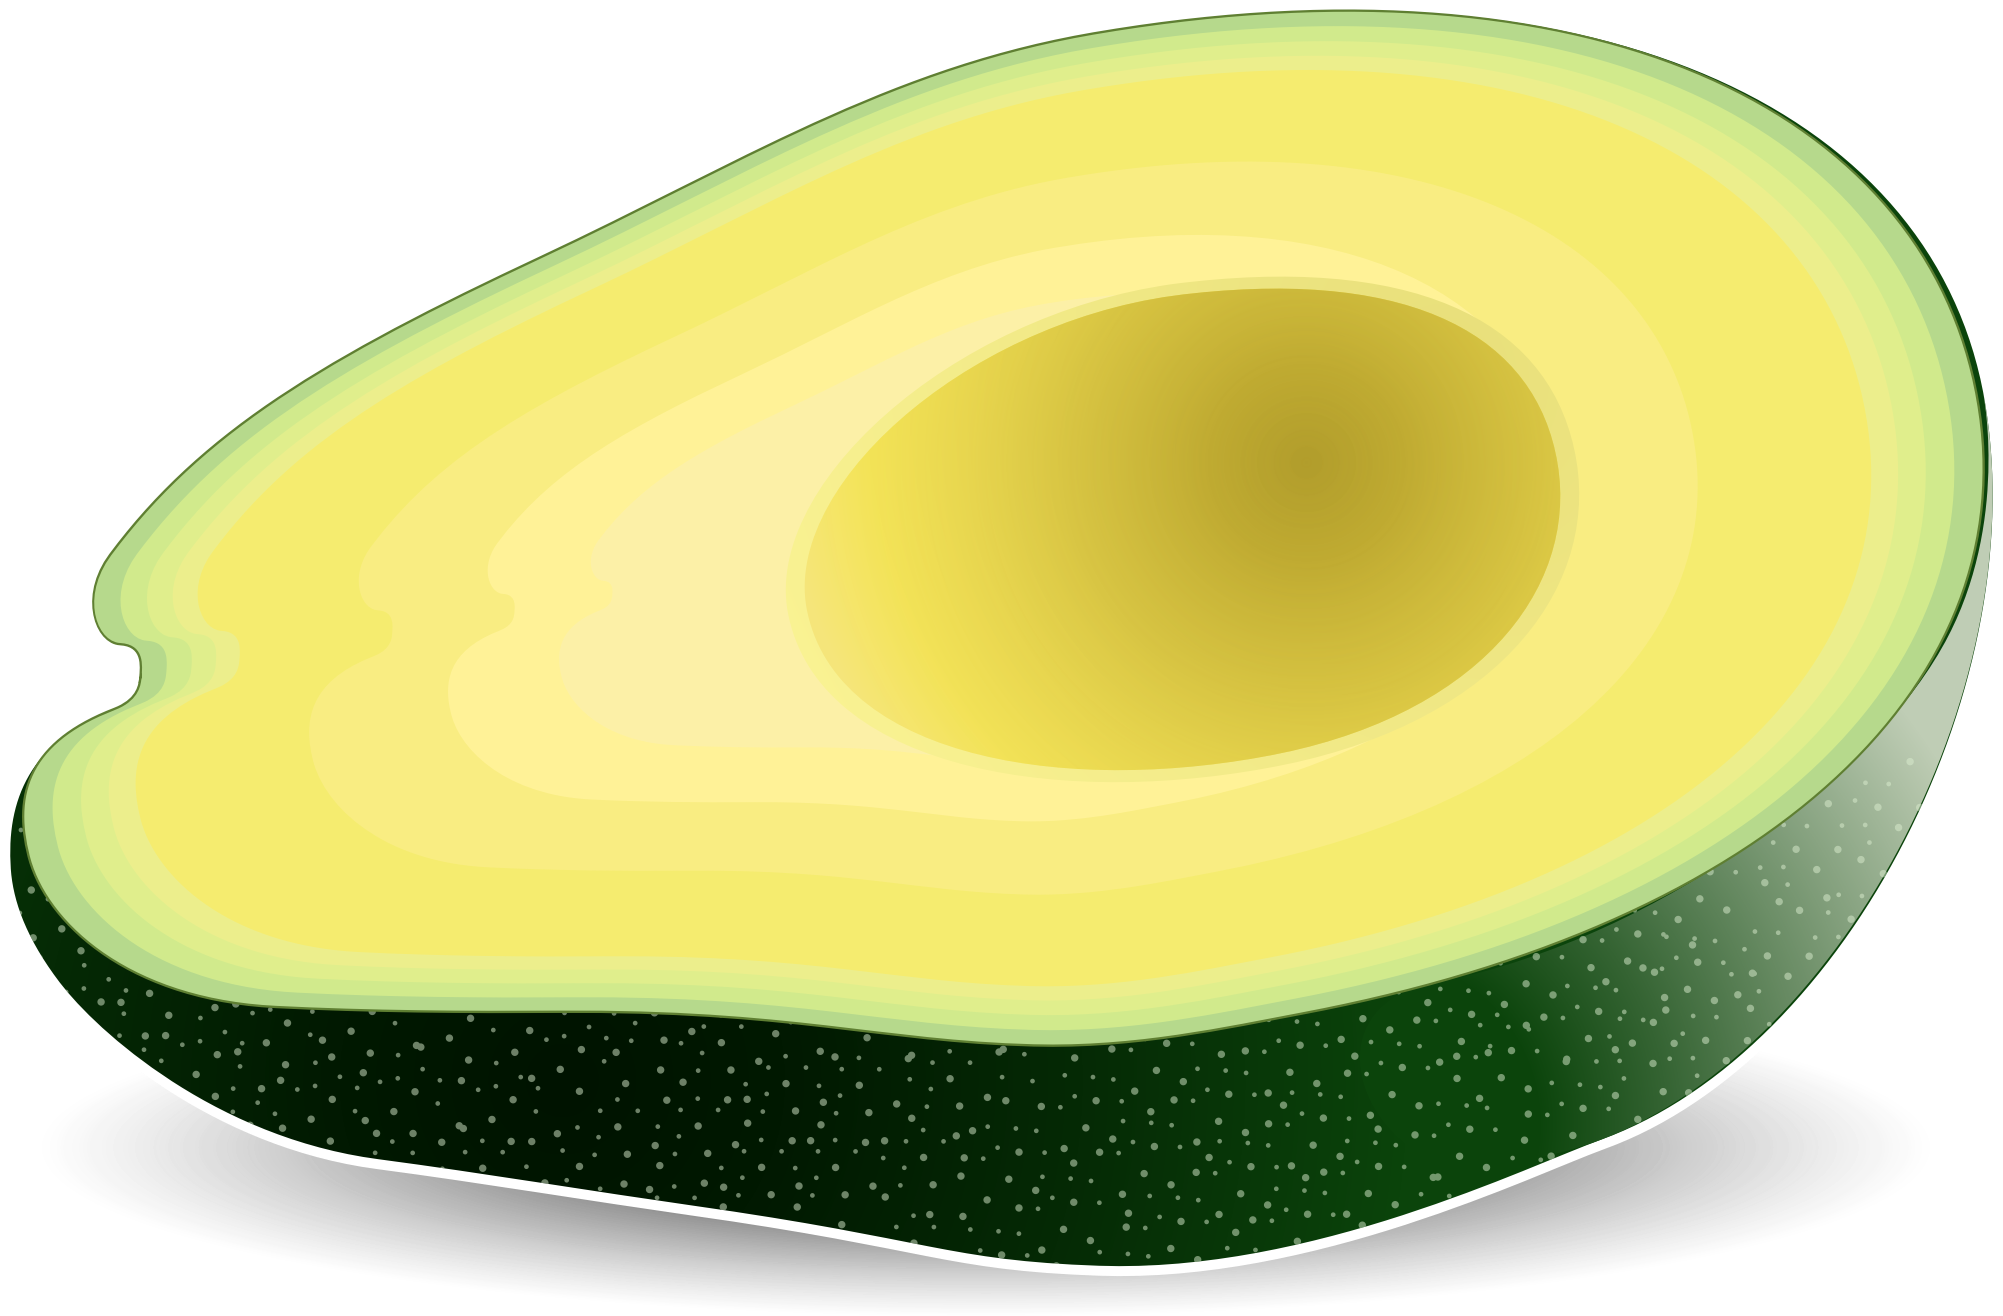 Avocado by Qomovirus!